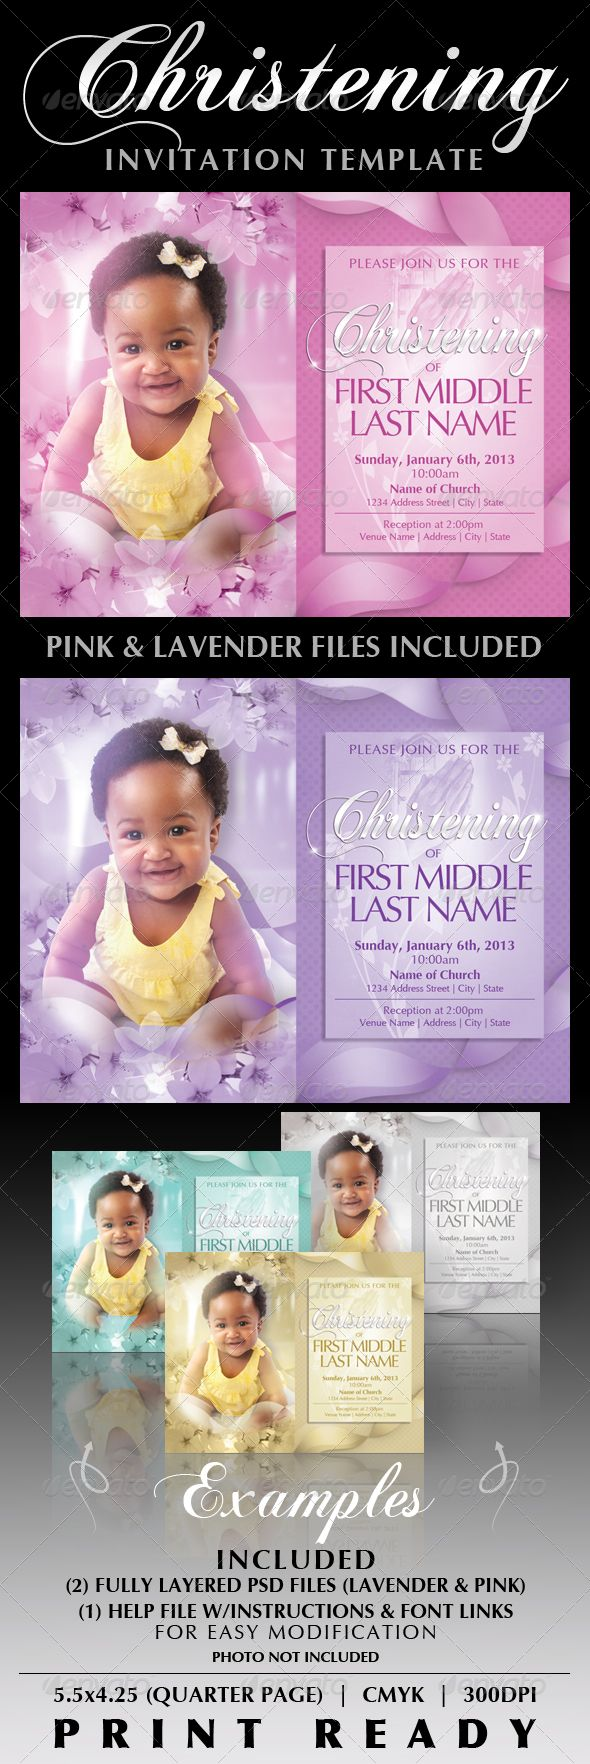 Baby Christening Invitation Templates Baby showers